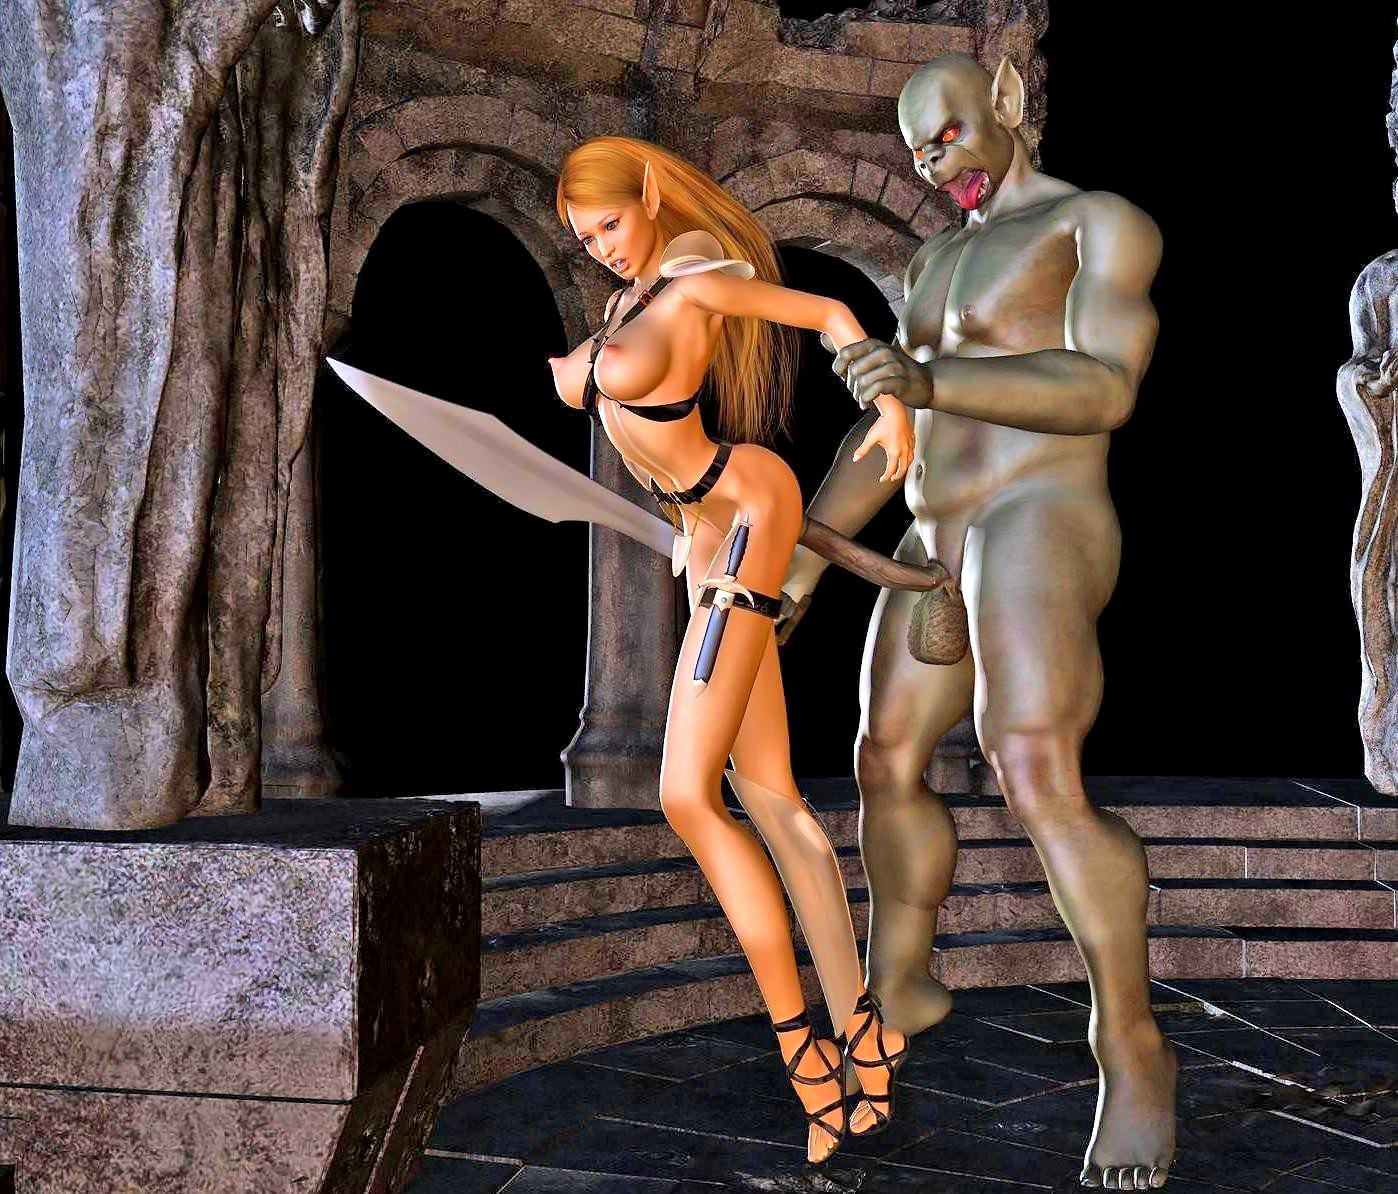 Erotic warrior gallery sexual pics